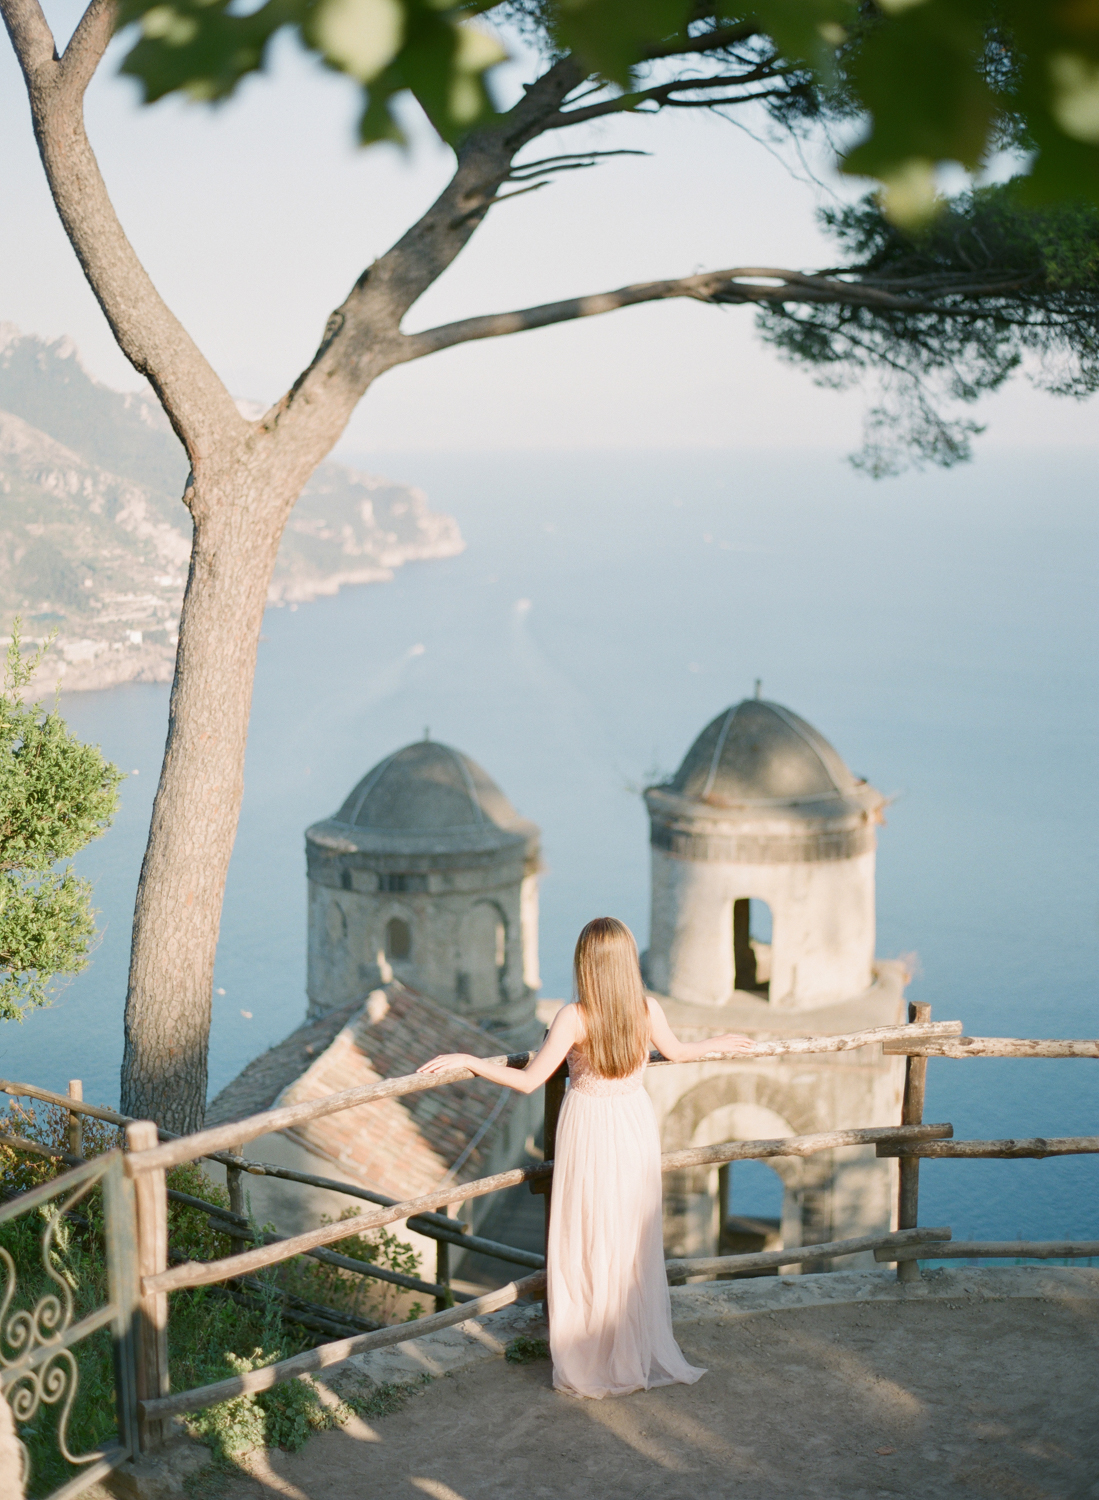 ravello wedding photographer amalfi coast wedding nikol bodnarova film wedding photographer_16.JPG